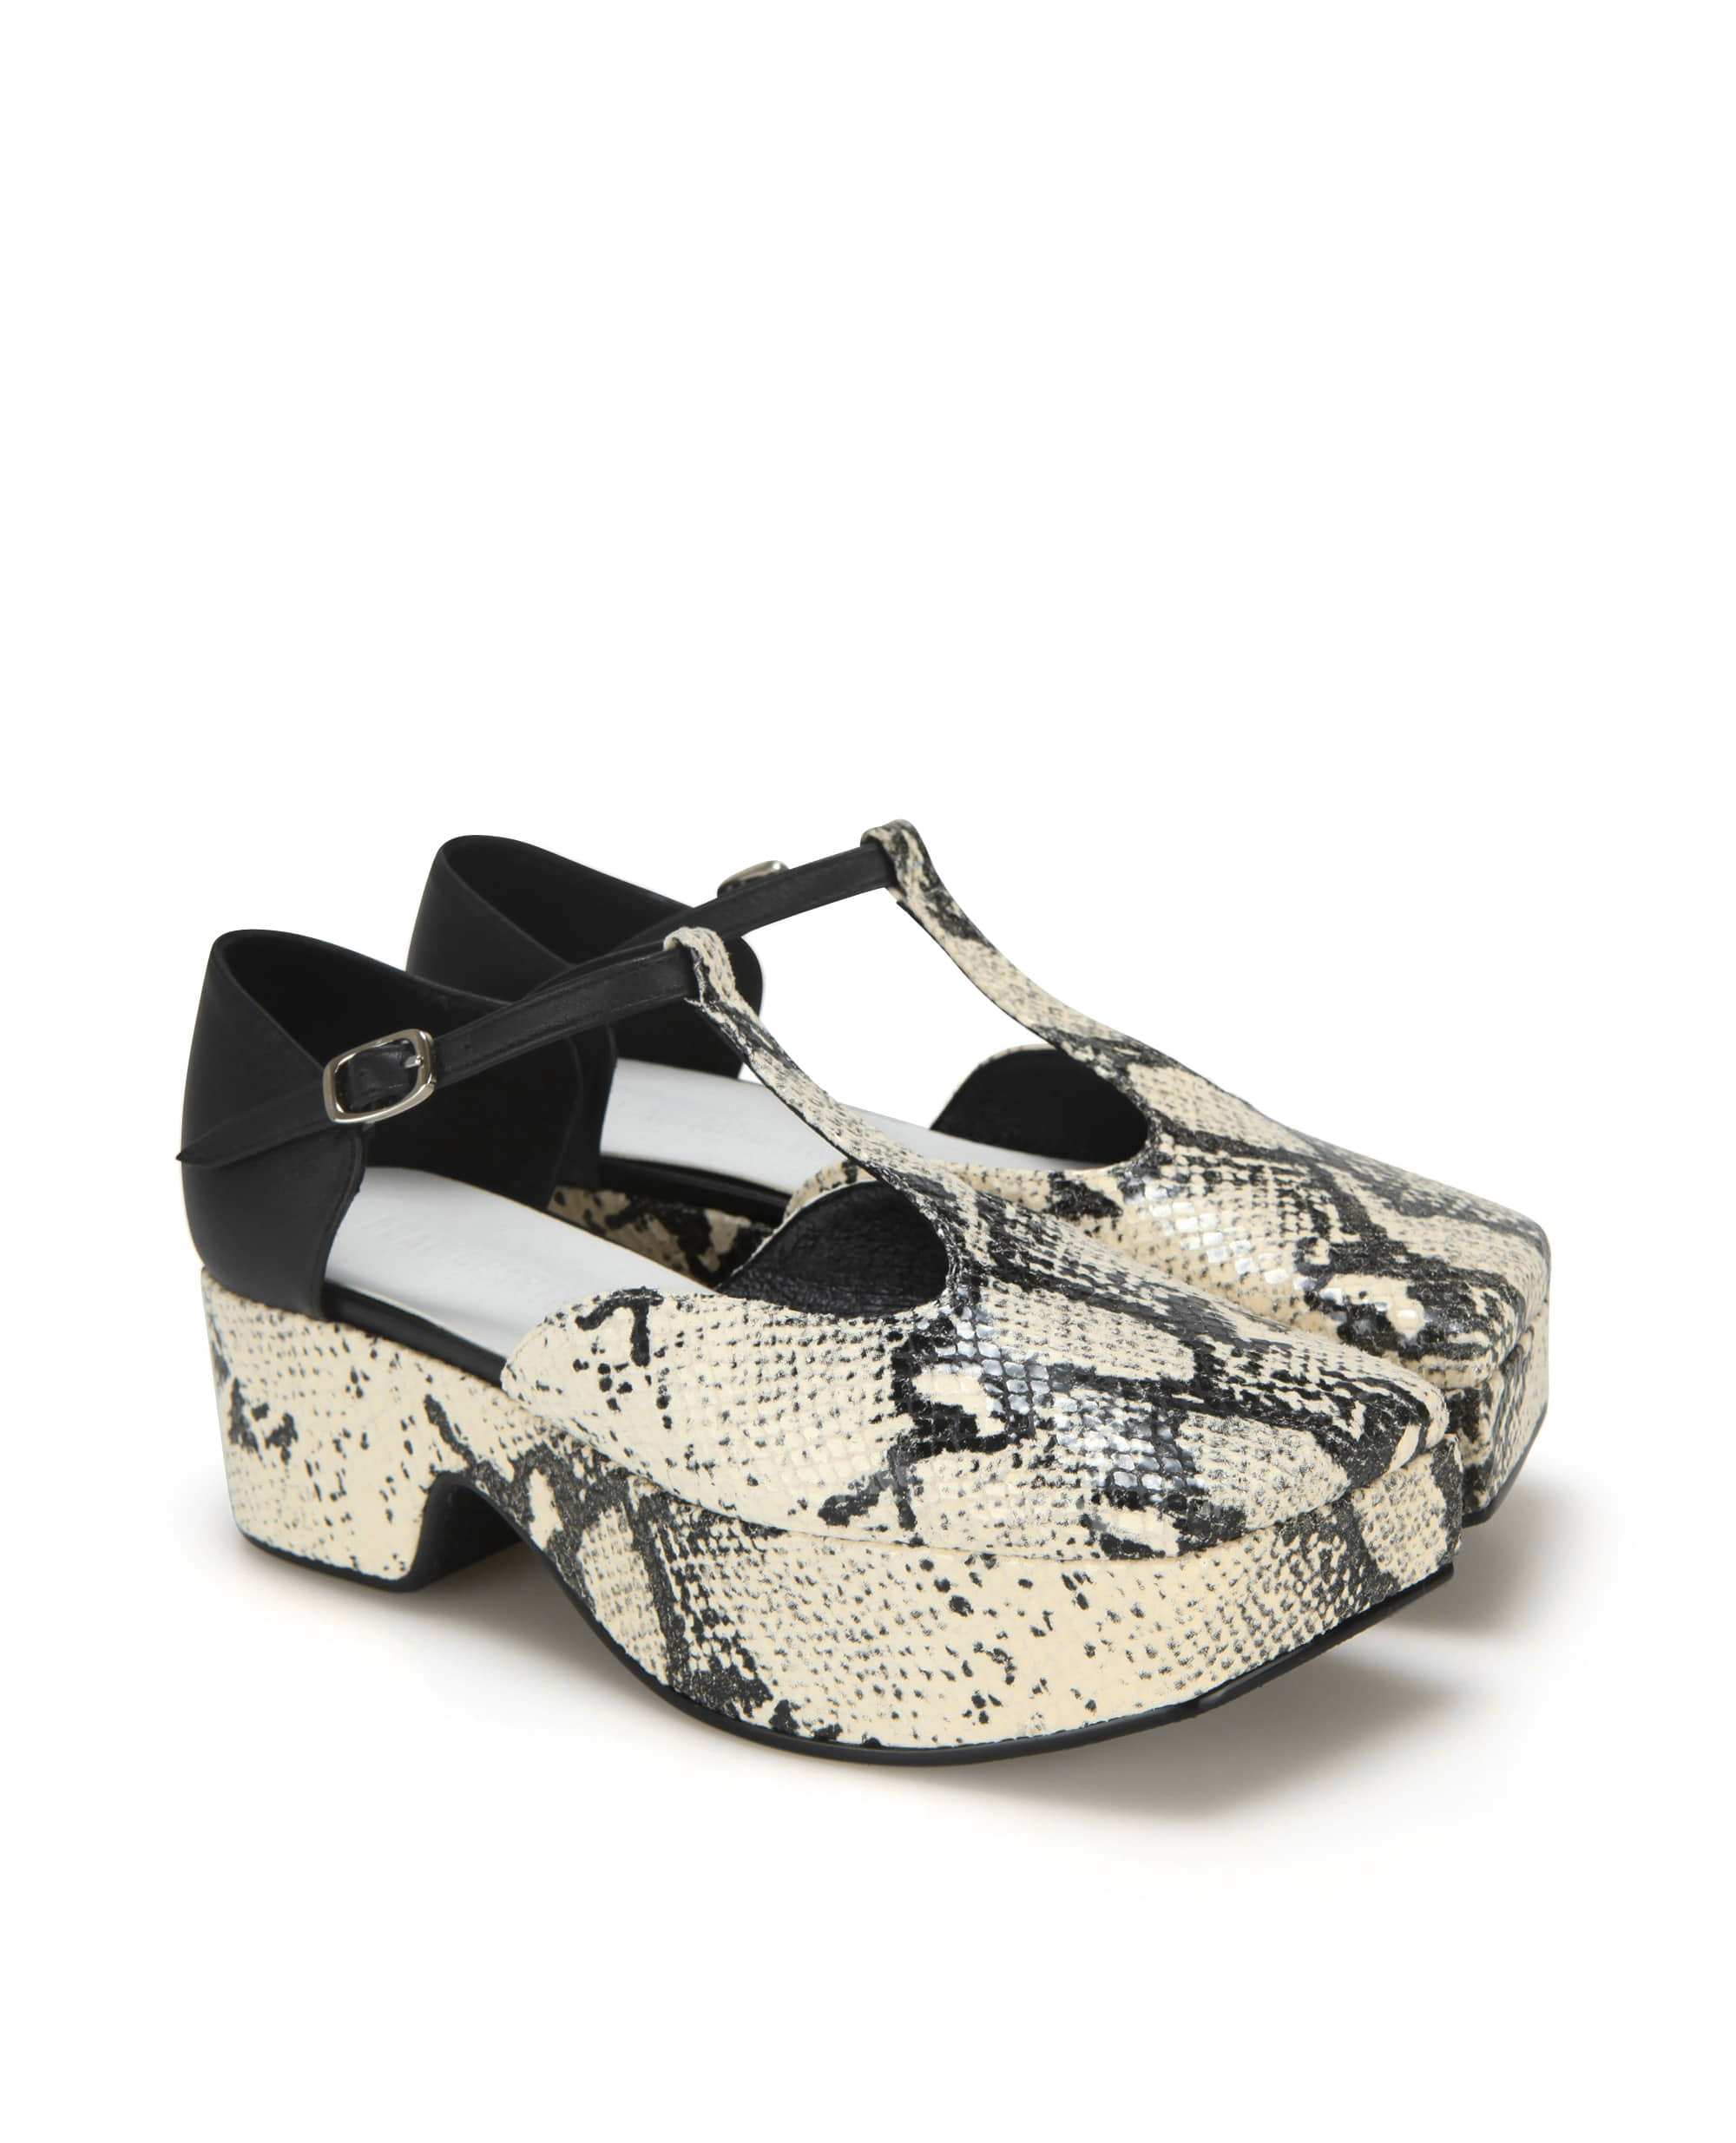 Squared toe T-strap mary jane platforms | Butter snake/Black